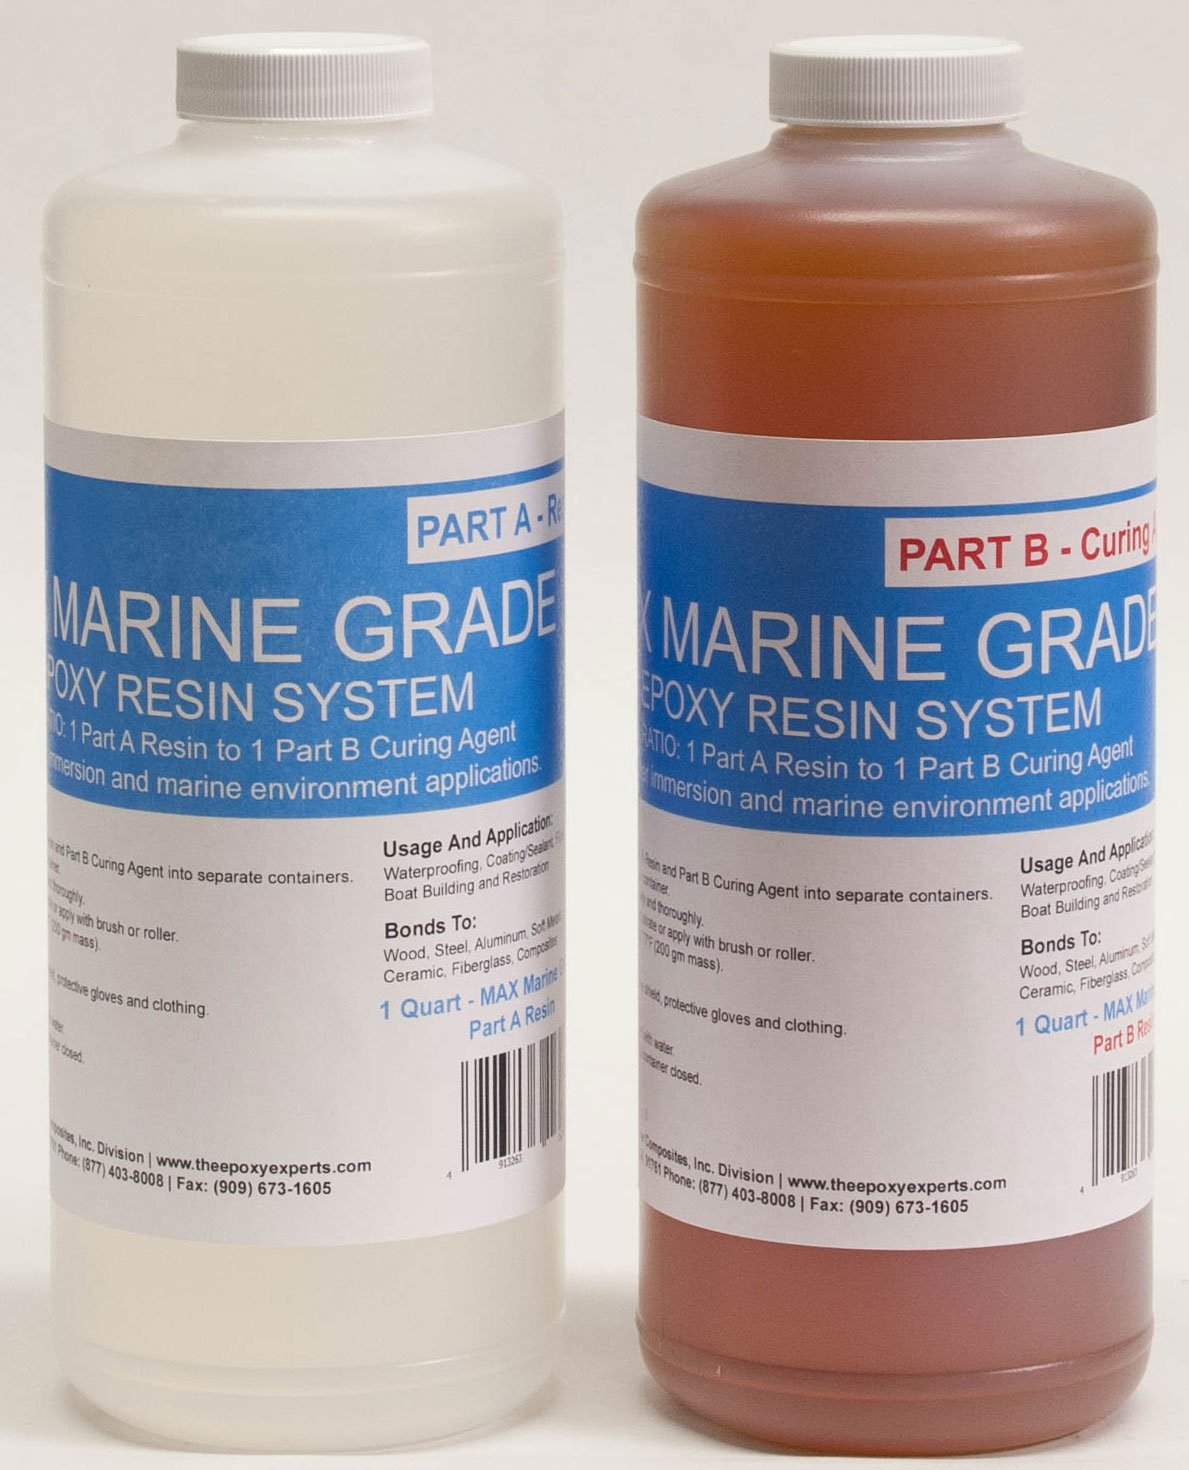 MAX MARINE GRADE Epoxy Resin System - 1/2 Gallon Kit - Wood Sealing, High Strength Fiberglassing Marine Applications, Composite Fabricating Resin